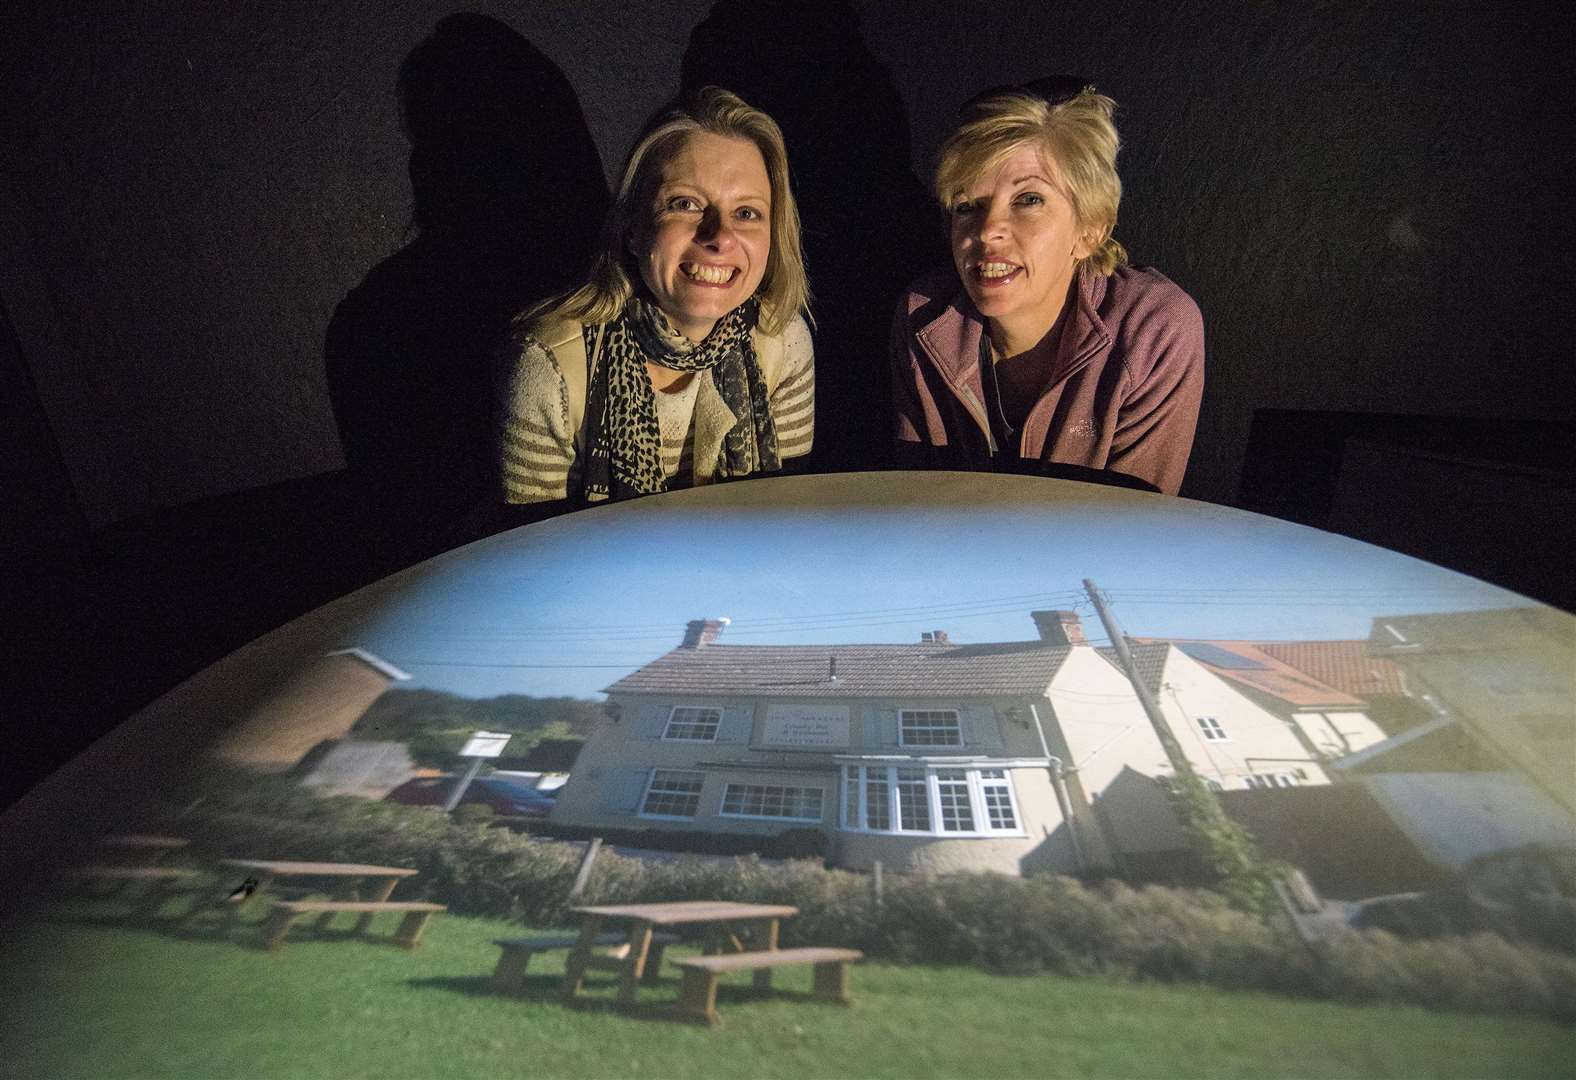 FEATURE: Art project gives new perspective at Gestingthorpe pub